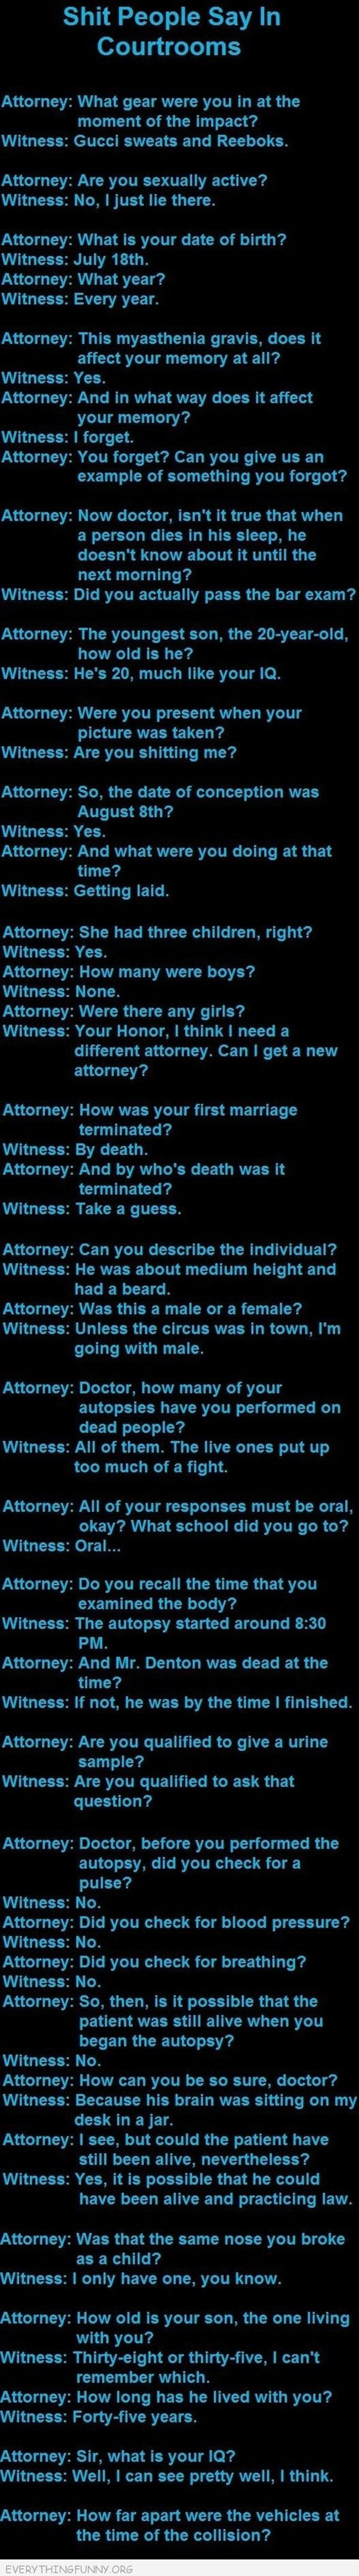 so funny. some of the smart witness remarks remind me of mock trial days